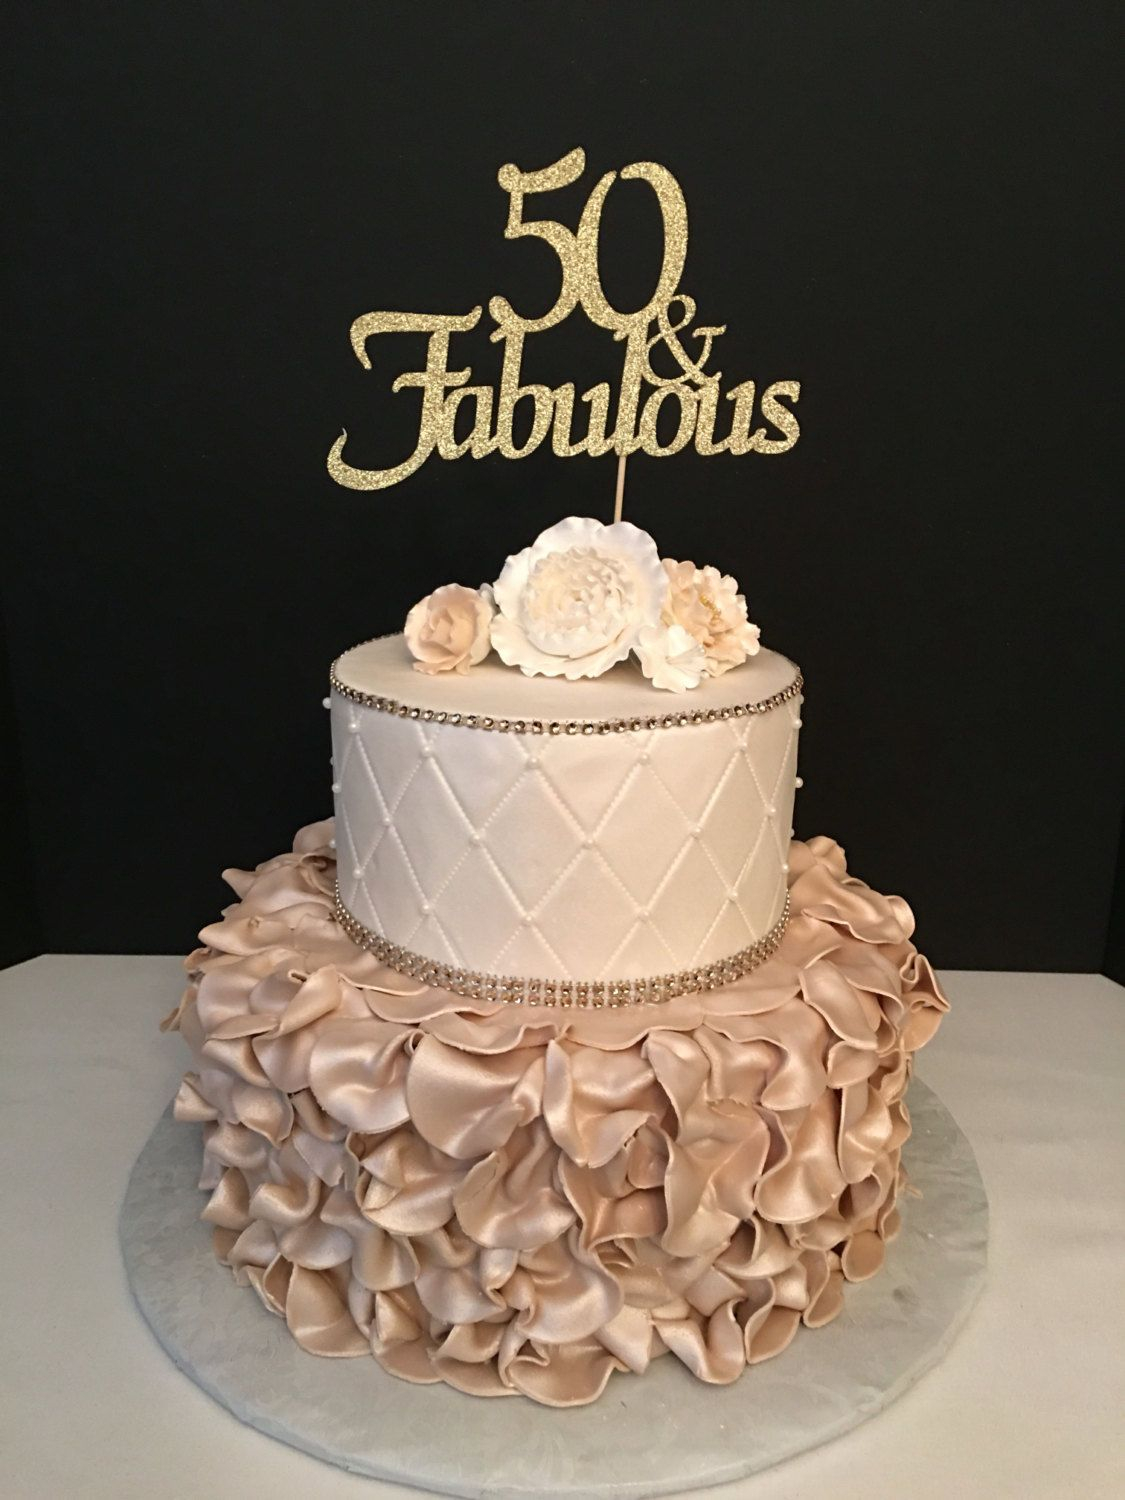 Superb 50 Birthday Cakes Any Number Gold Glitter 50Th Birthday Cake Funny Birthday Cards Online Alyptdamsfinfo